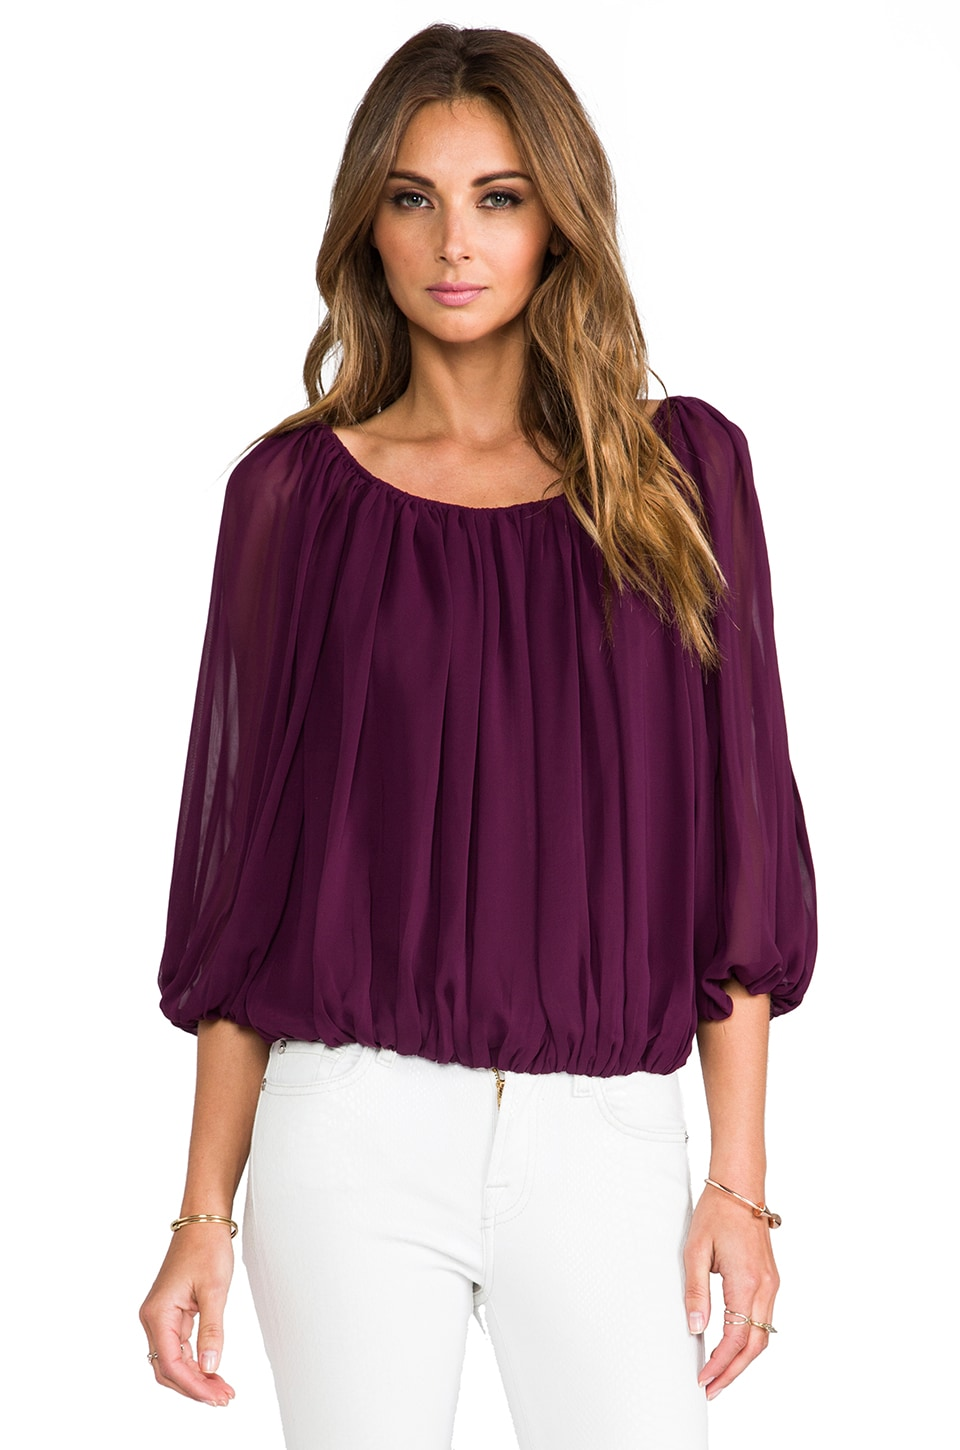 Alice + Olivia Braiden Boxy Gathered Top in Plum